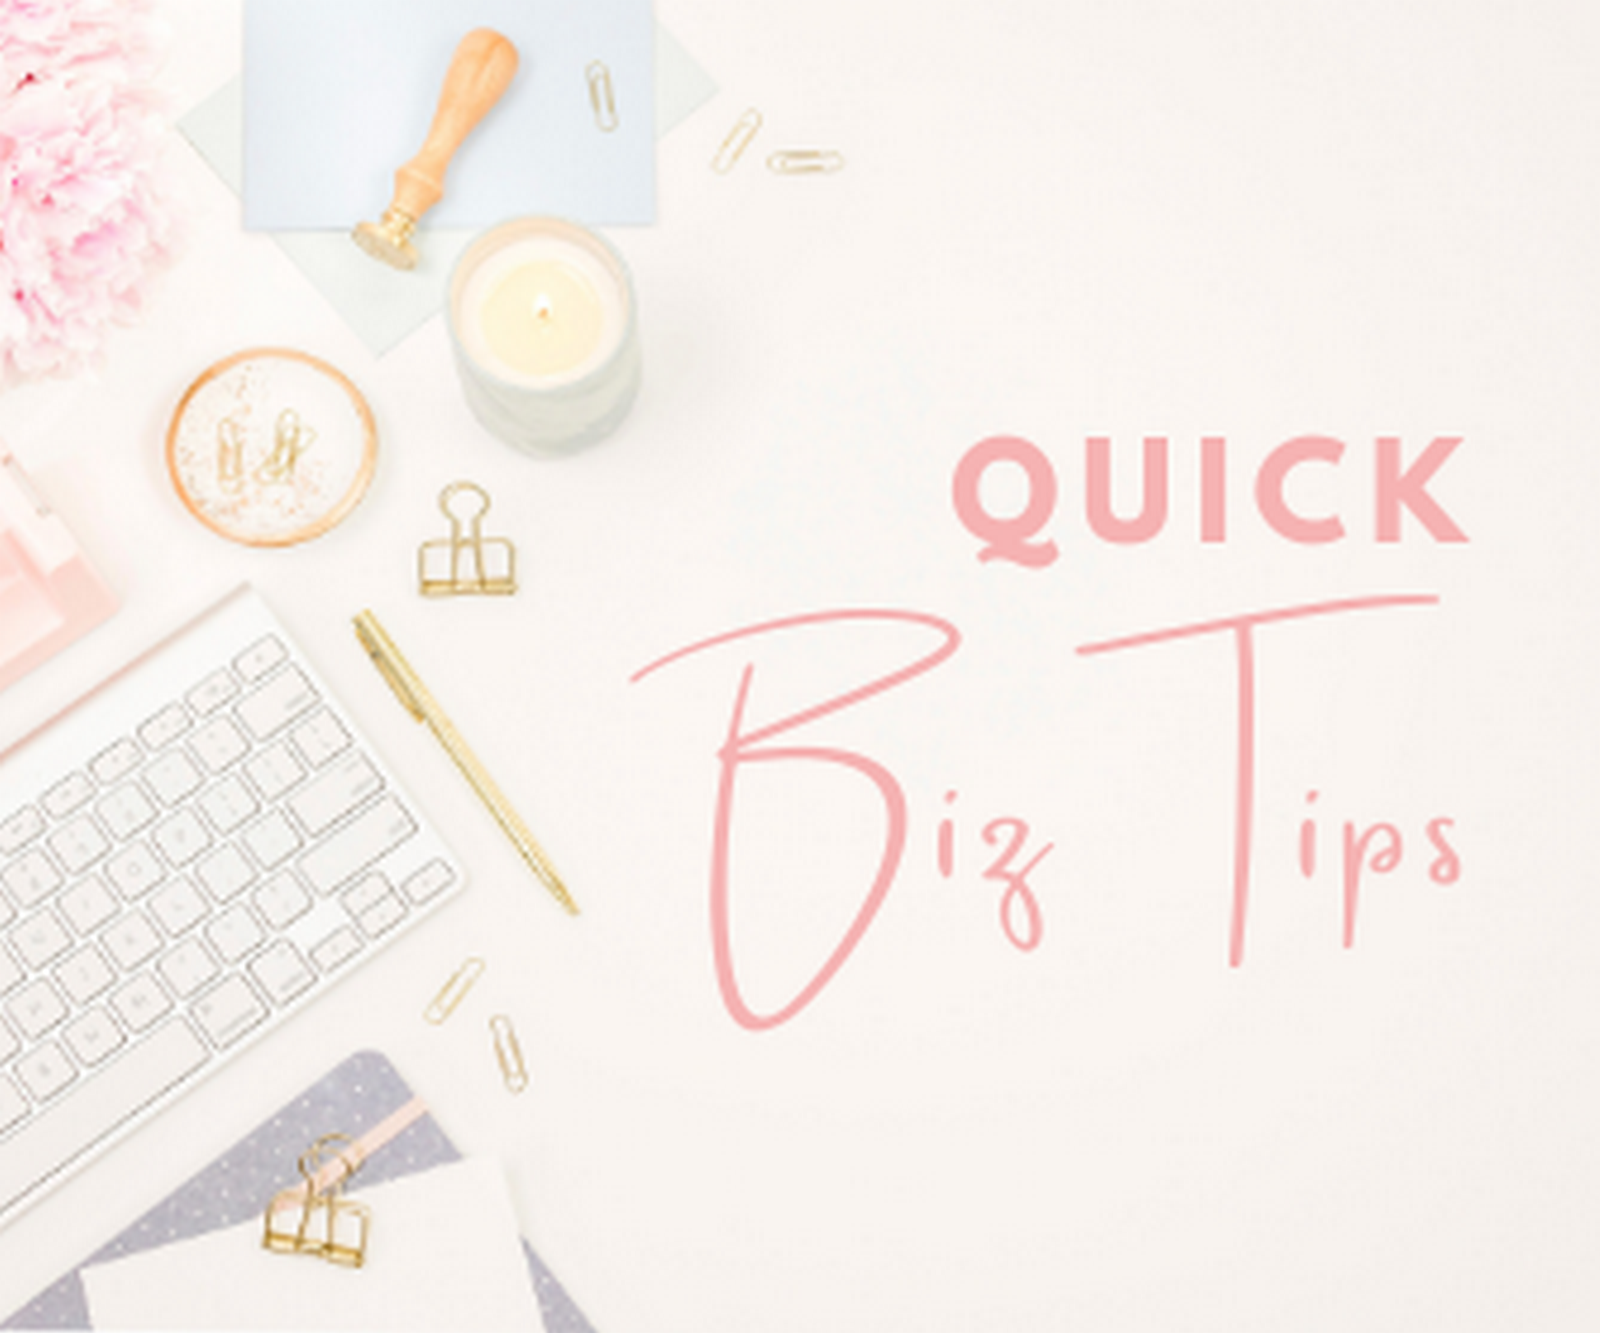 cherylphan.com - Quick Biz Tips block